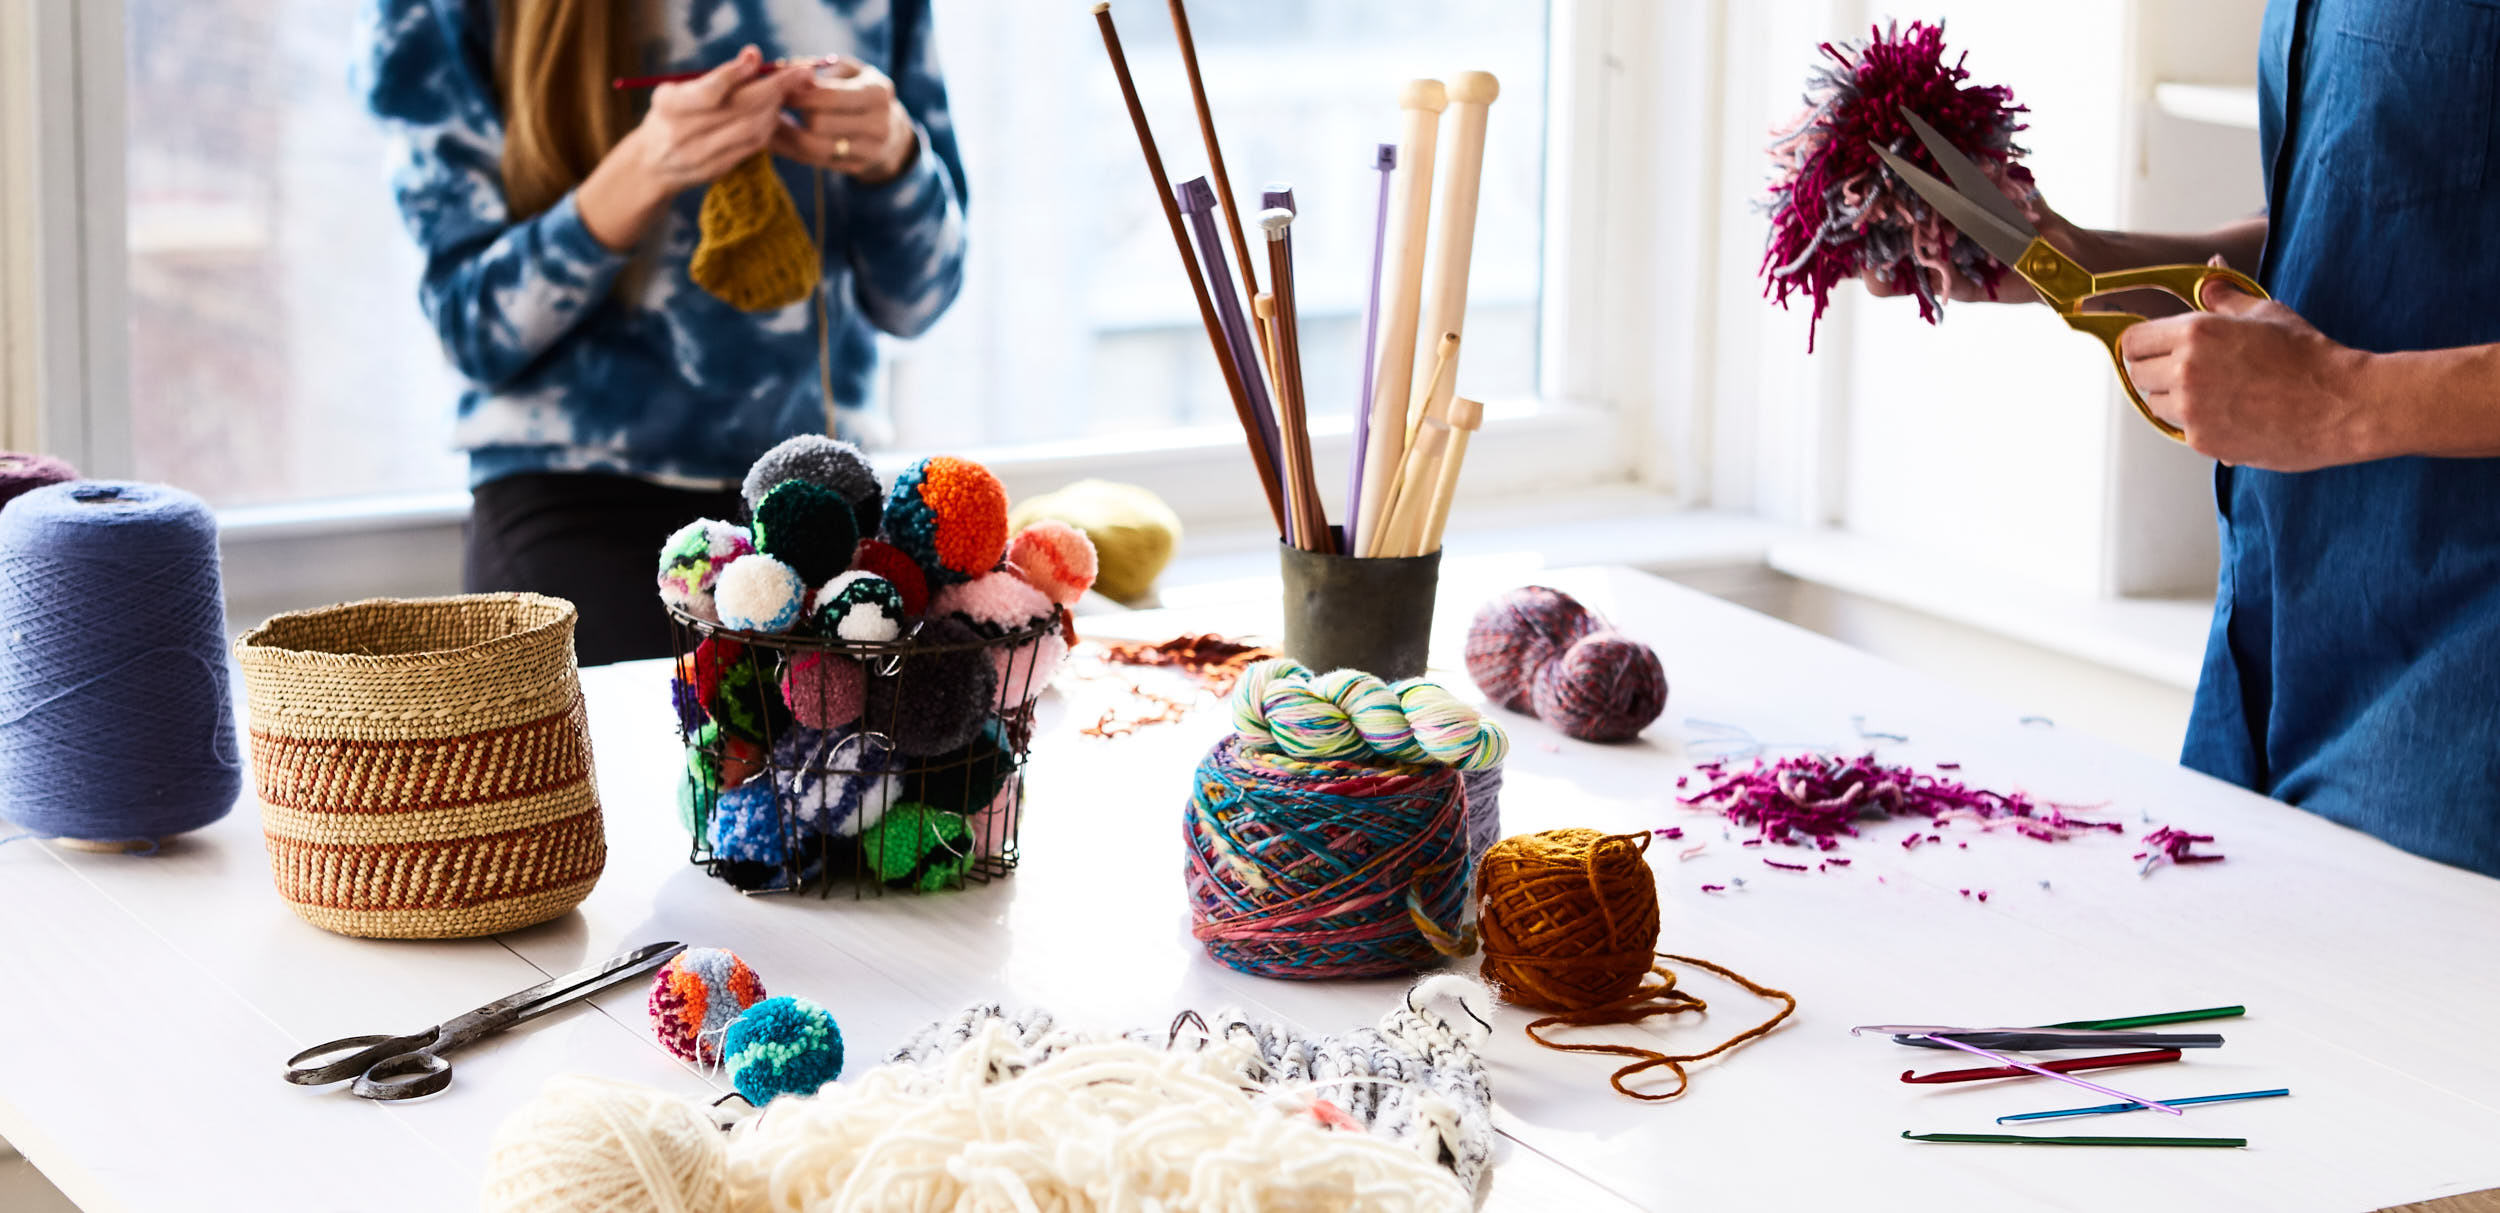 2016-12-14-etsy-project-leo-hero-homepage-pom-poms-0973-w